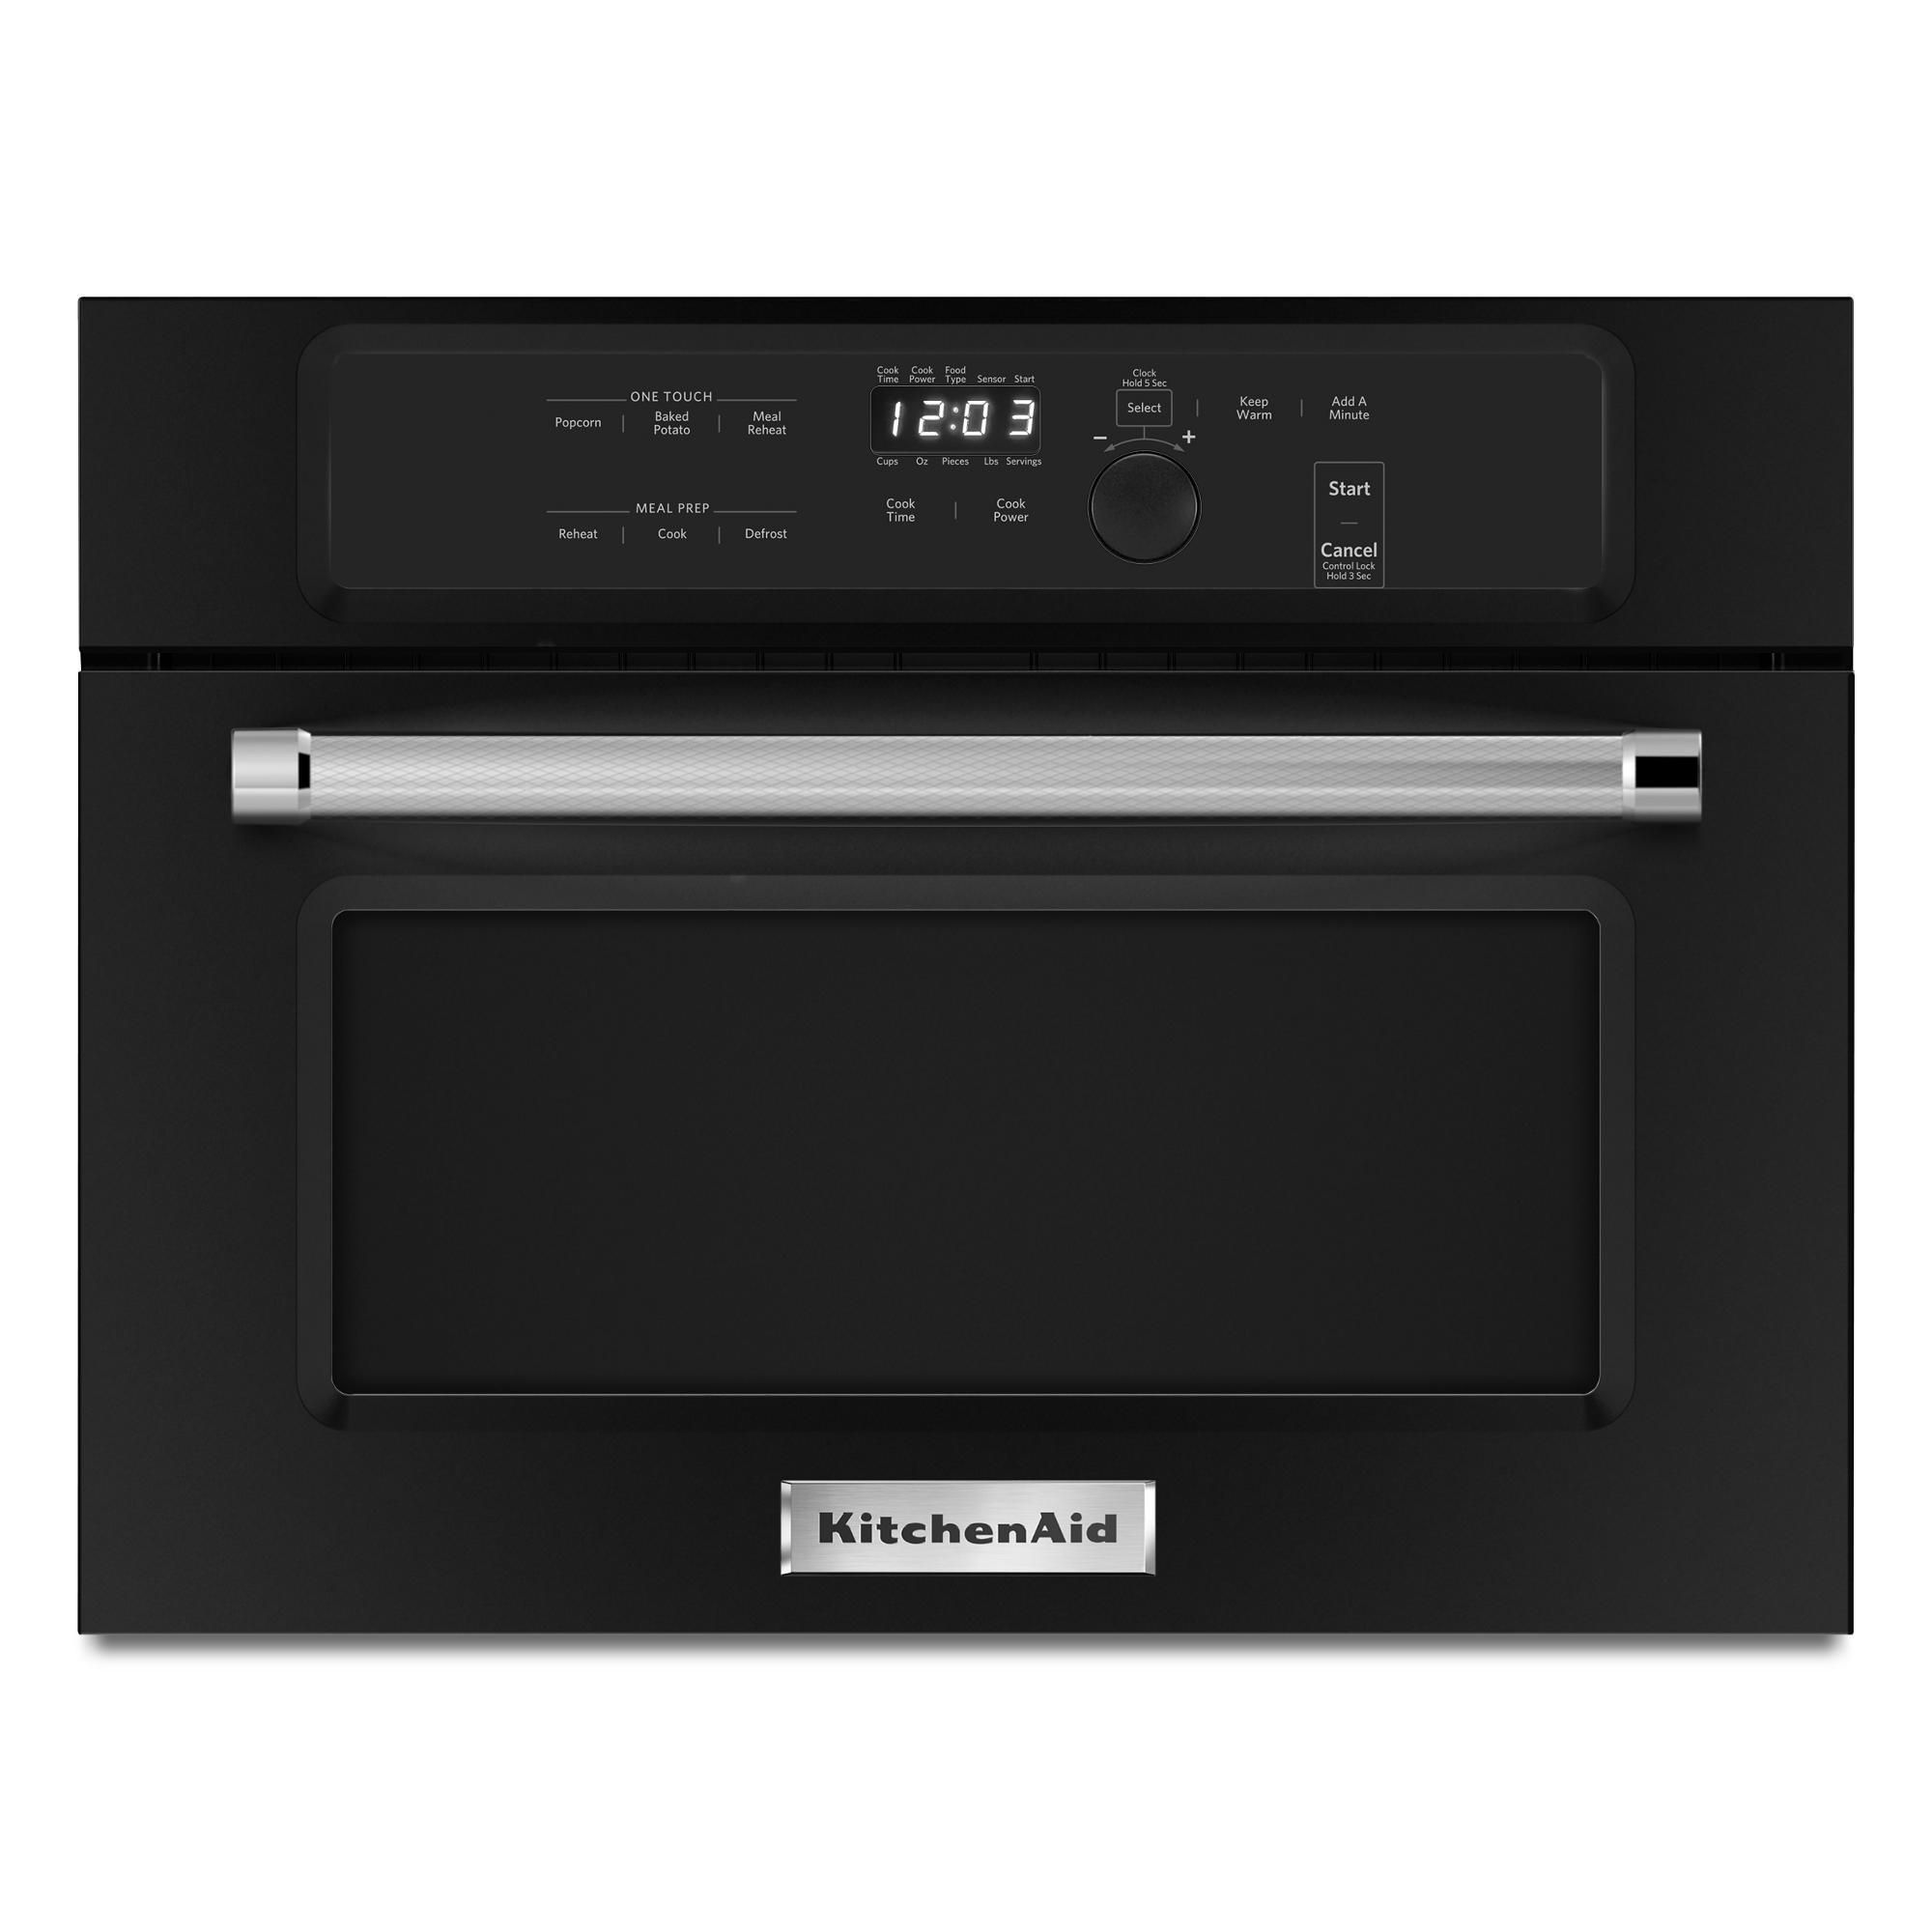 Kmbs104e Kitchenaid Kmbs104e Built In Microwave Ovens